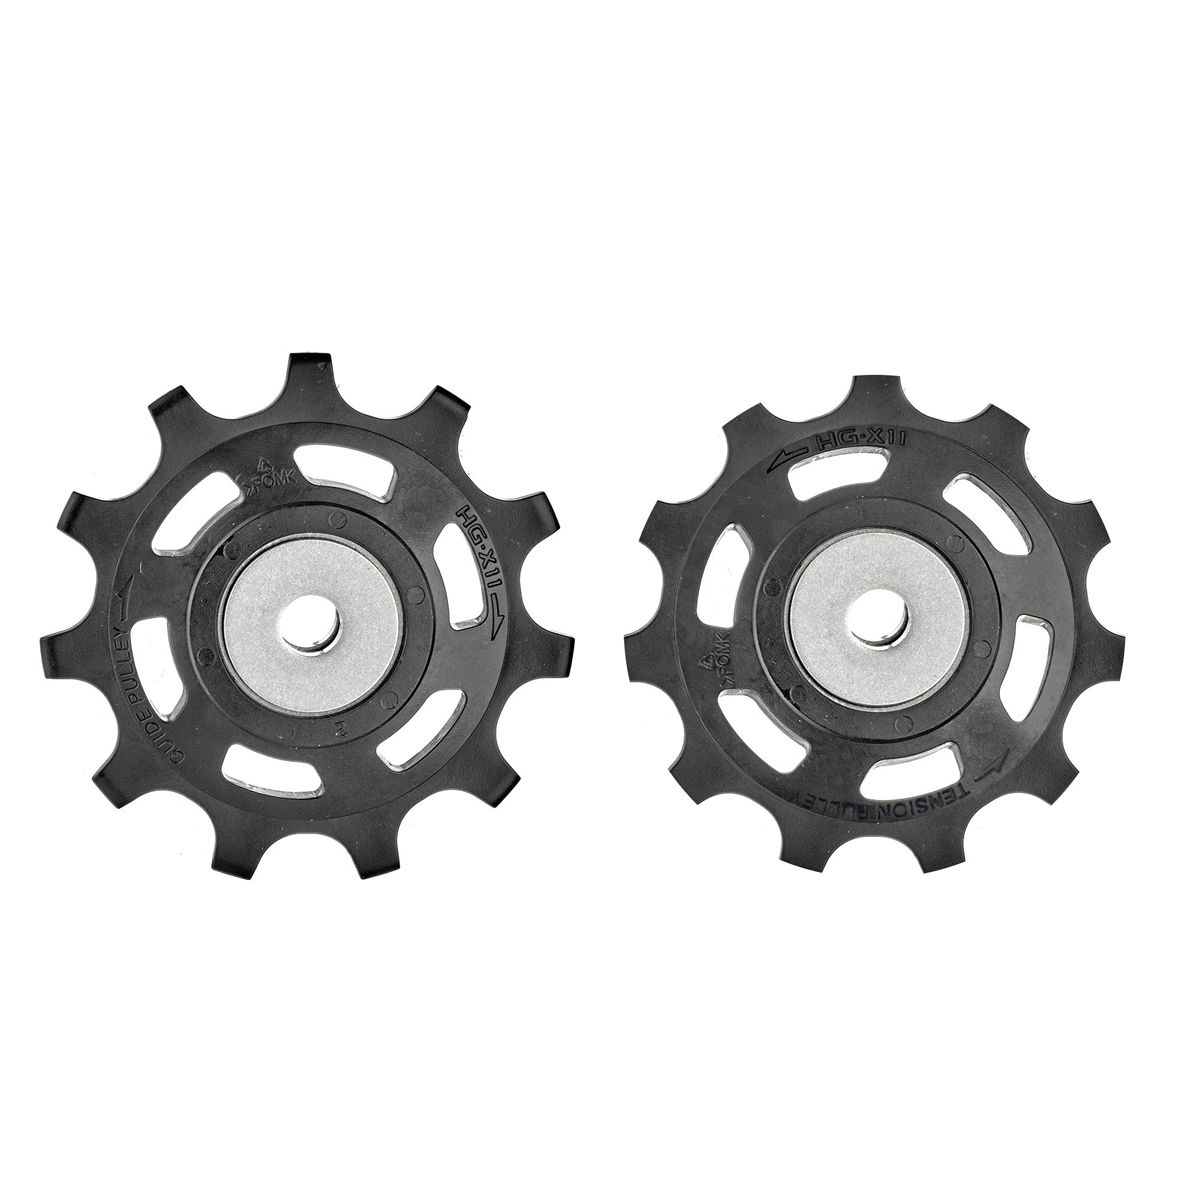 XT 11-SPEED JOCKEY WHEELS